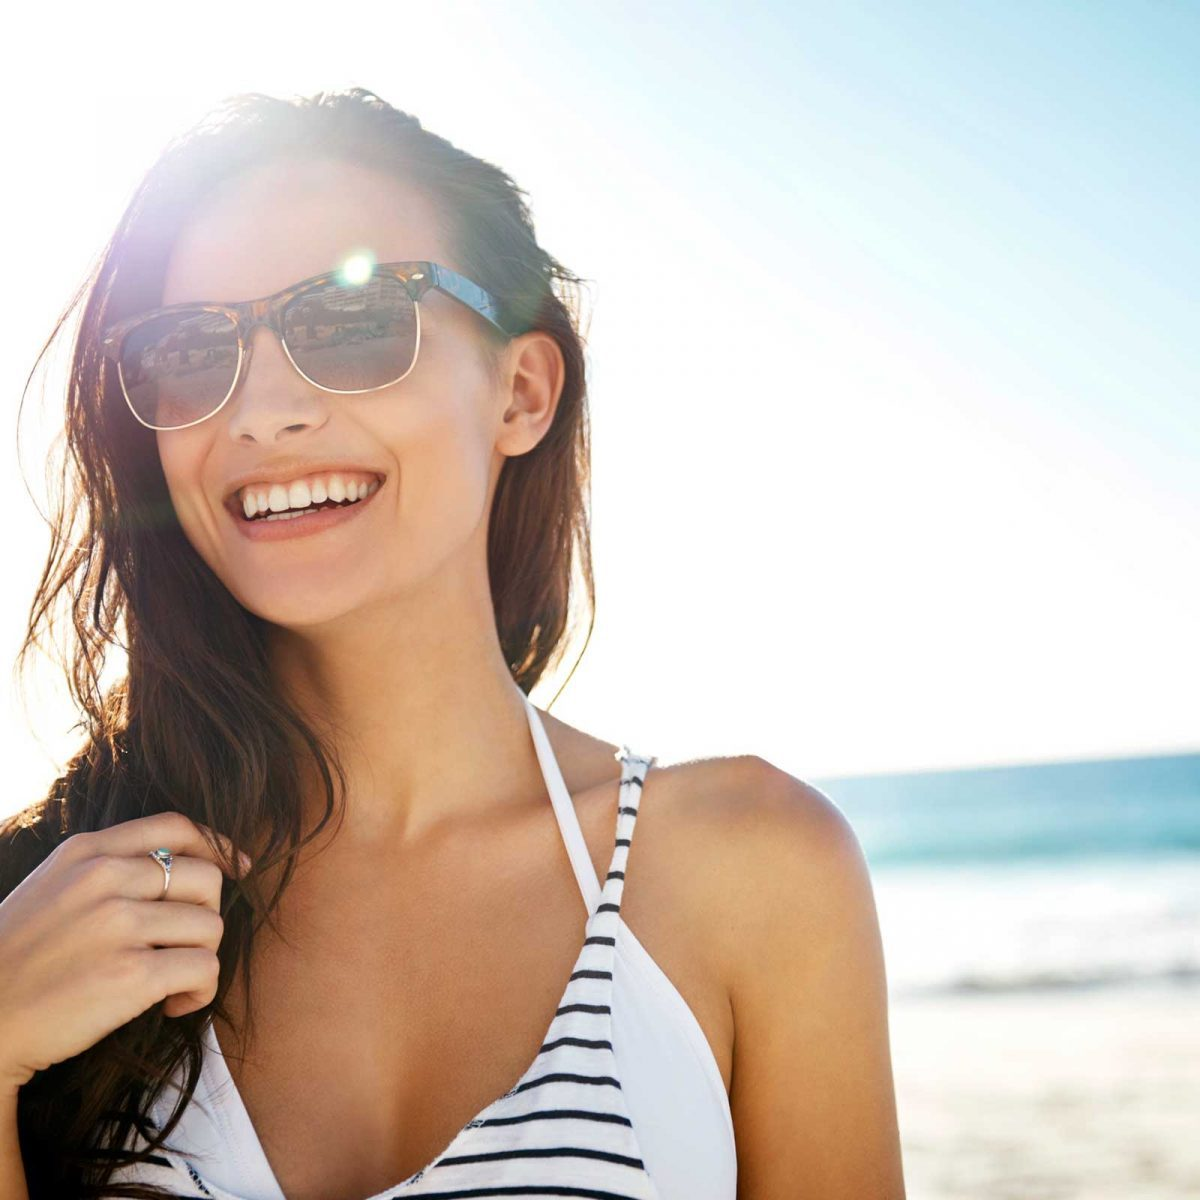 61fd552c65e Sunglasses Myths That Could Ruin Your Eyes